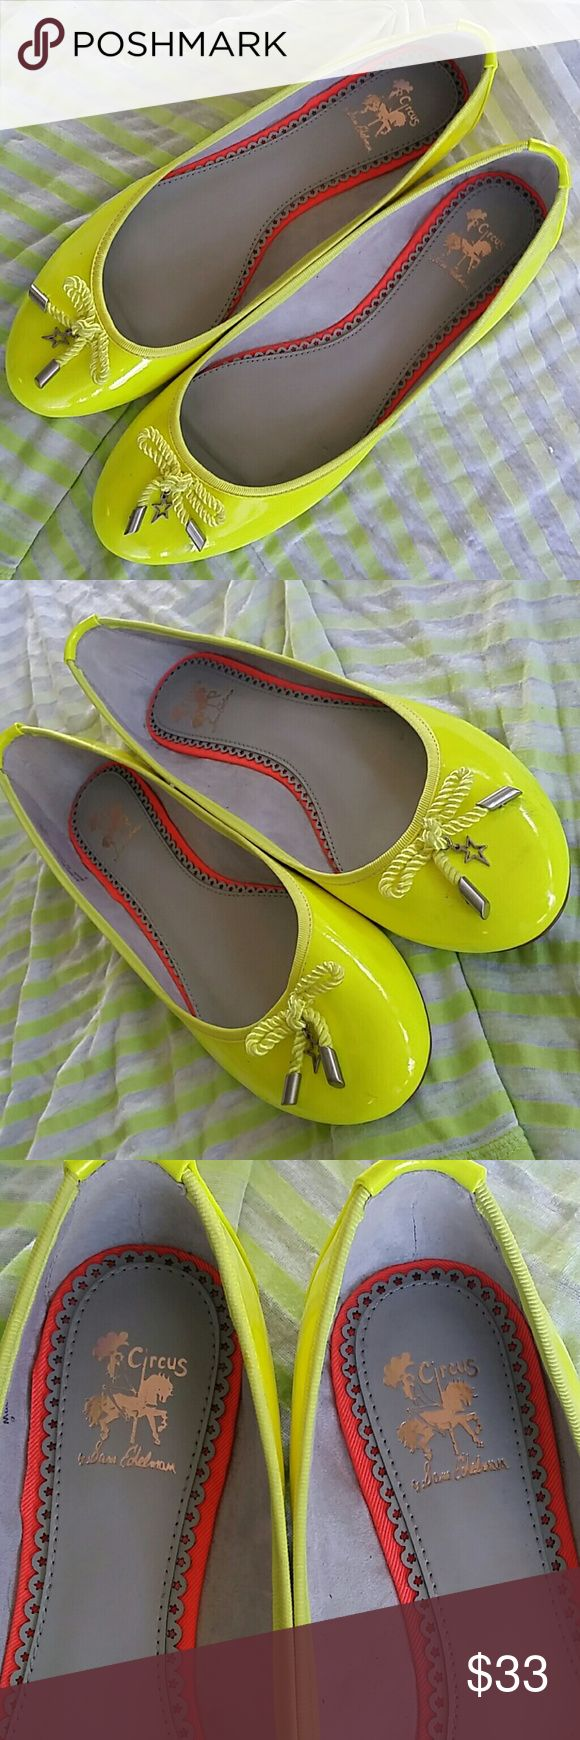 Sam Edelman Neon Ballerina Flats Seeing stars with these adorable Ava flats by Sam Edelman Neon Green/Yellow with cute lil stars on the bows.  Preowned and worn once. Very very lil wear if any.   No Trades No PP  But, YES to offers and bundle discounts! Sam Edelman Shoes Flats & Loafers